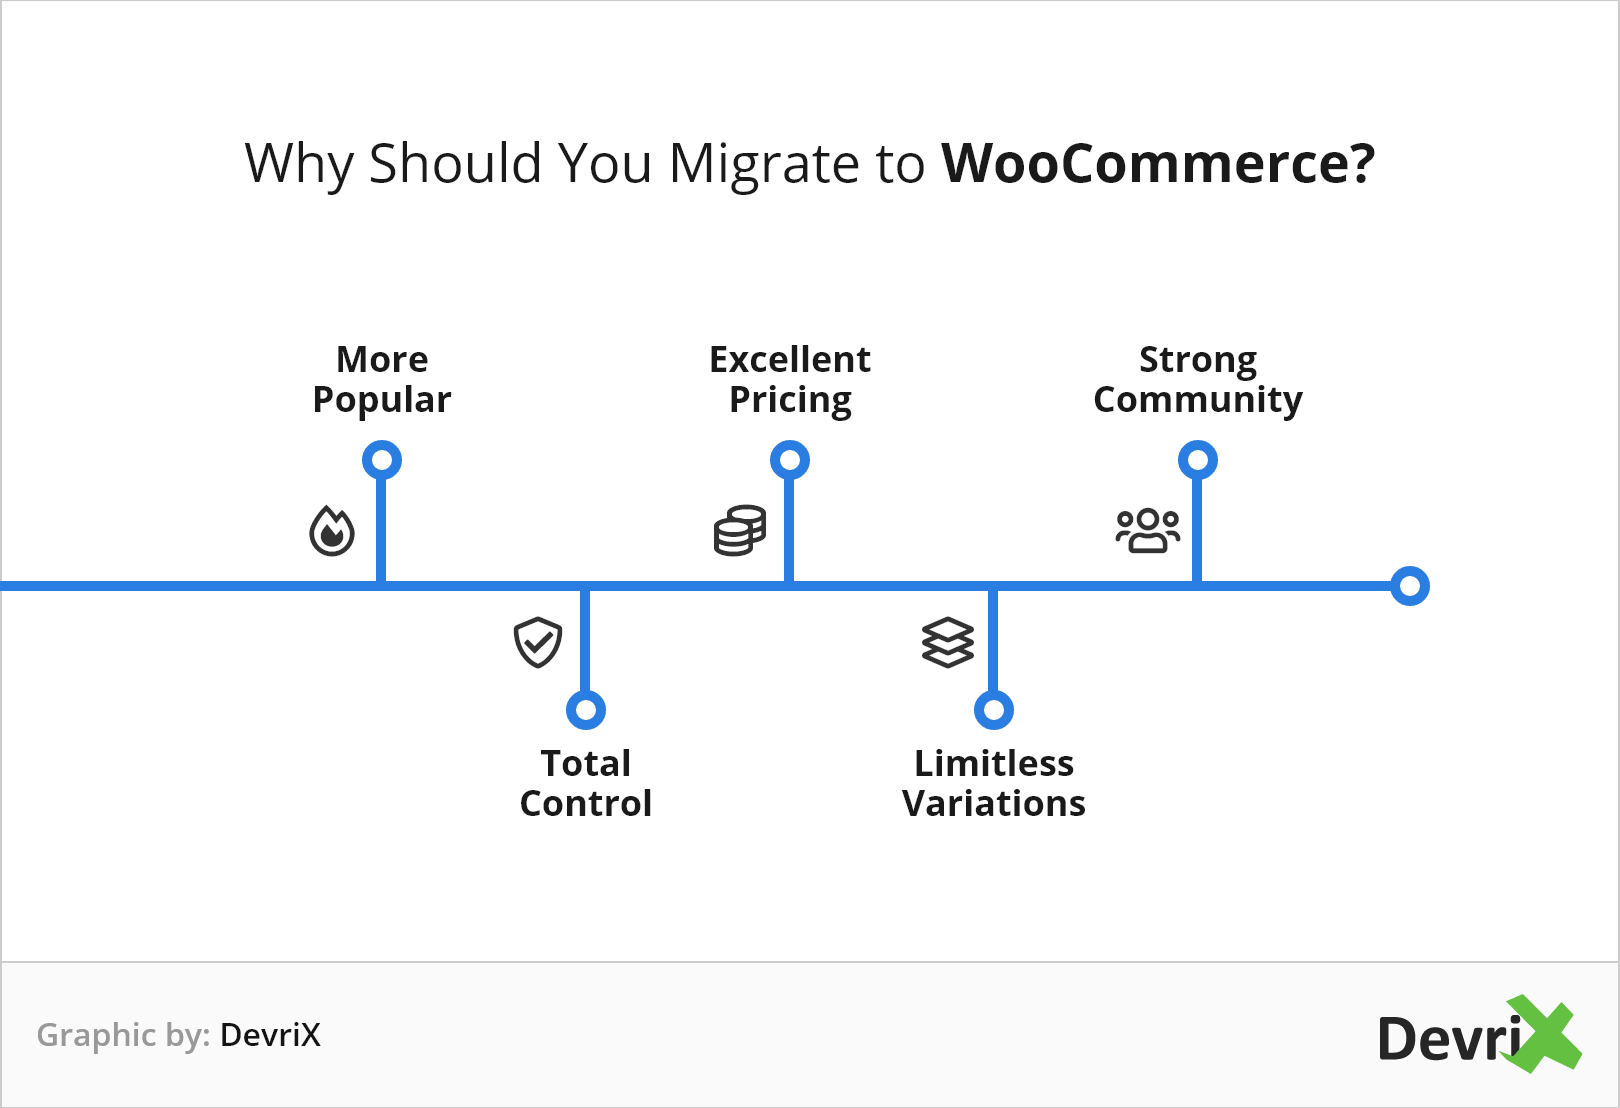 Why Should You Migrate from WooCommerce@2x